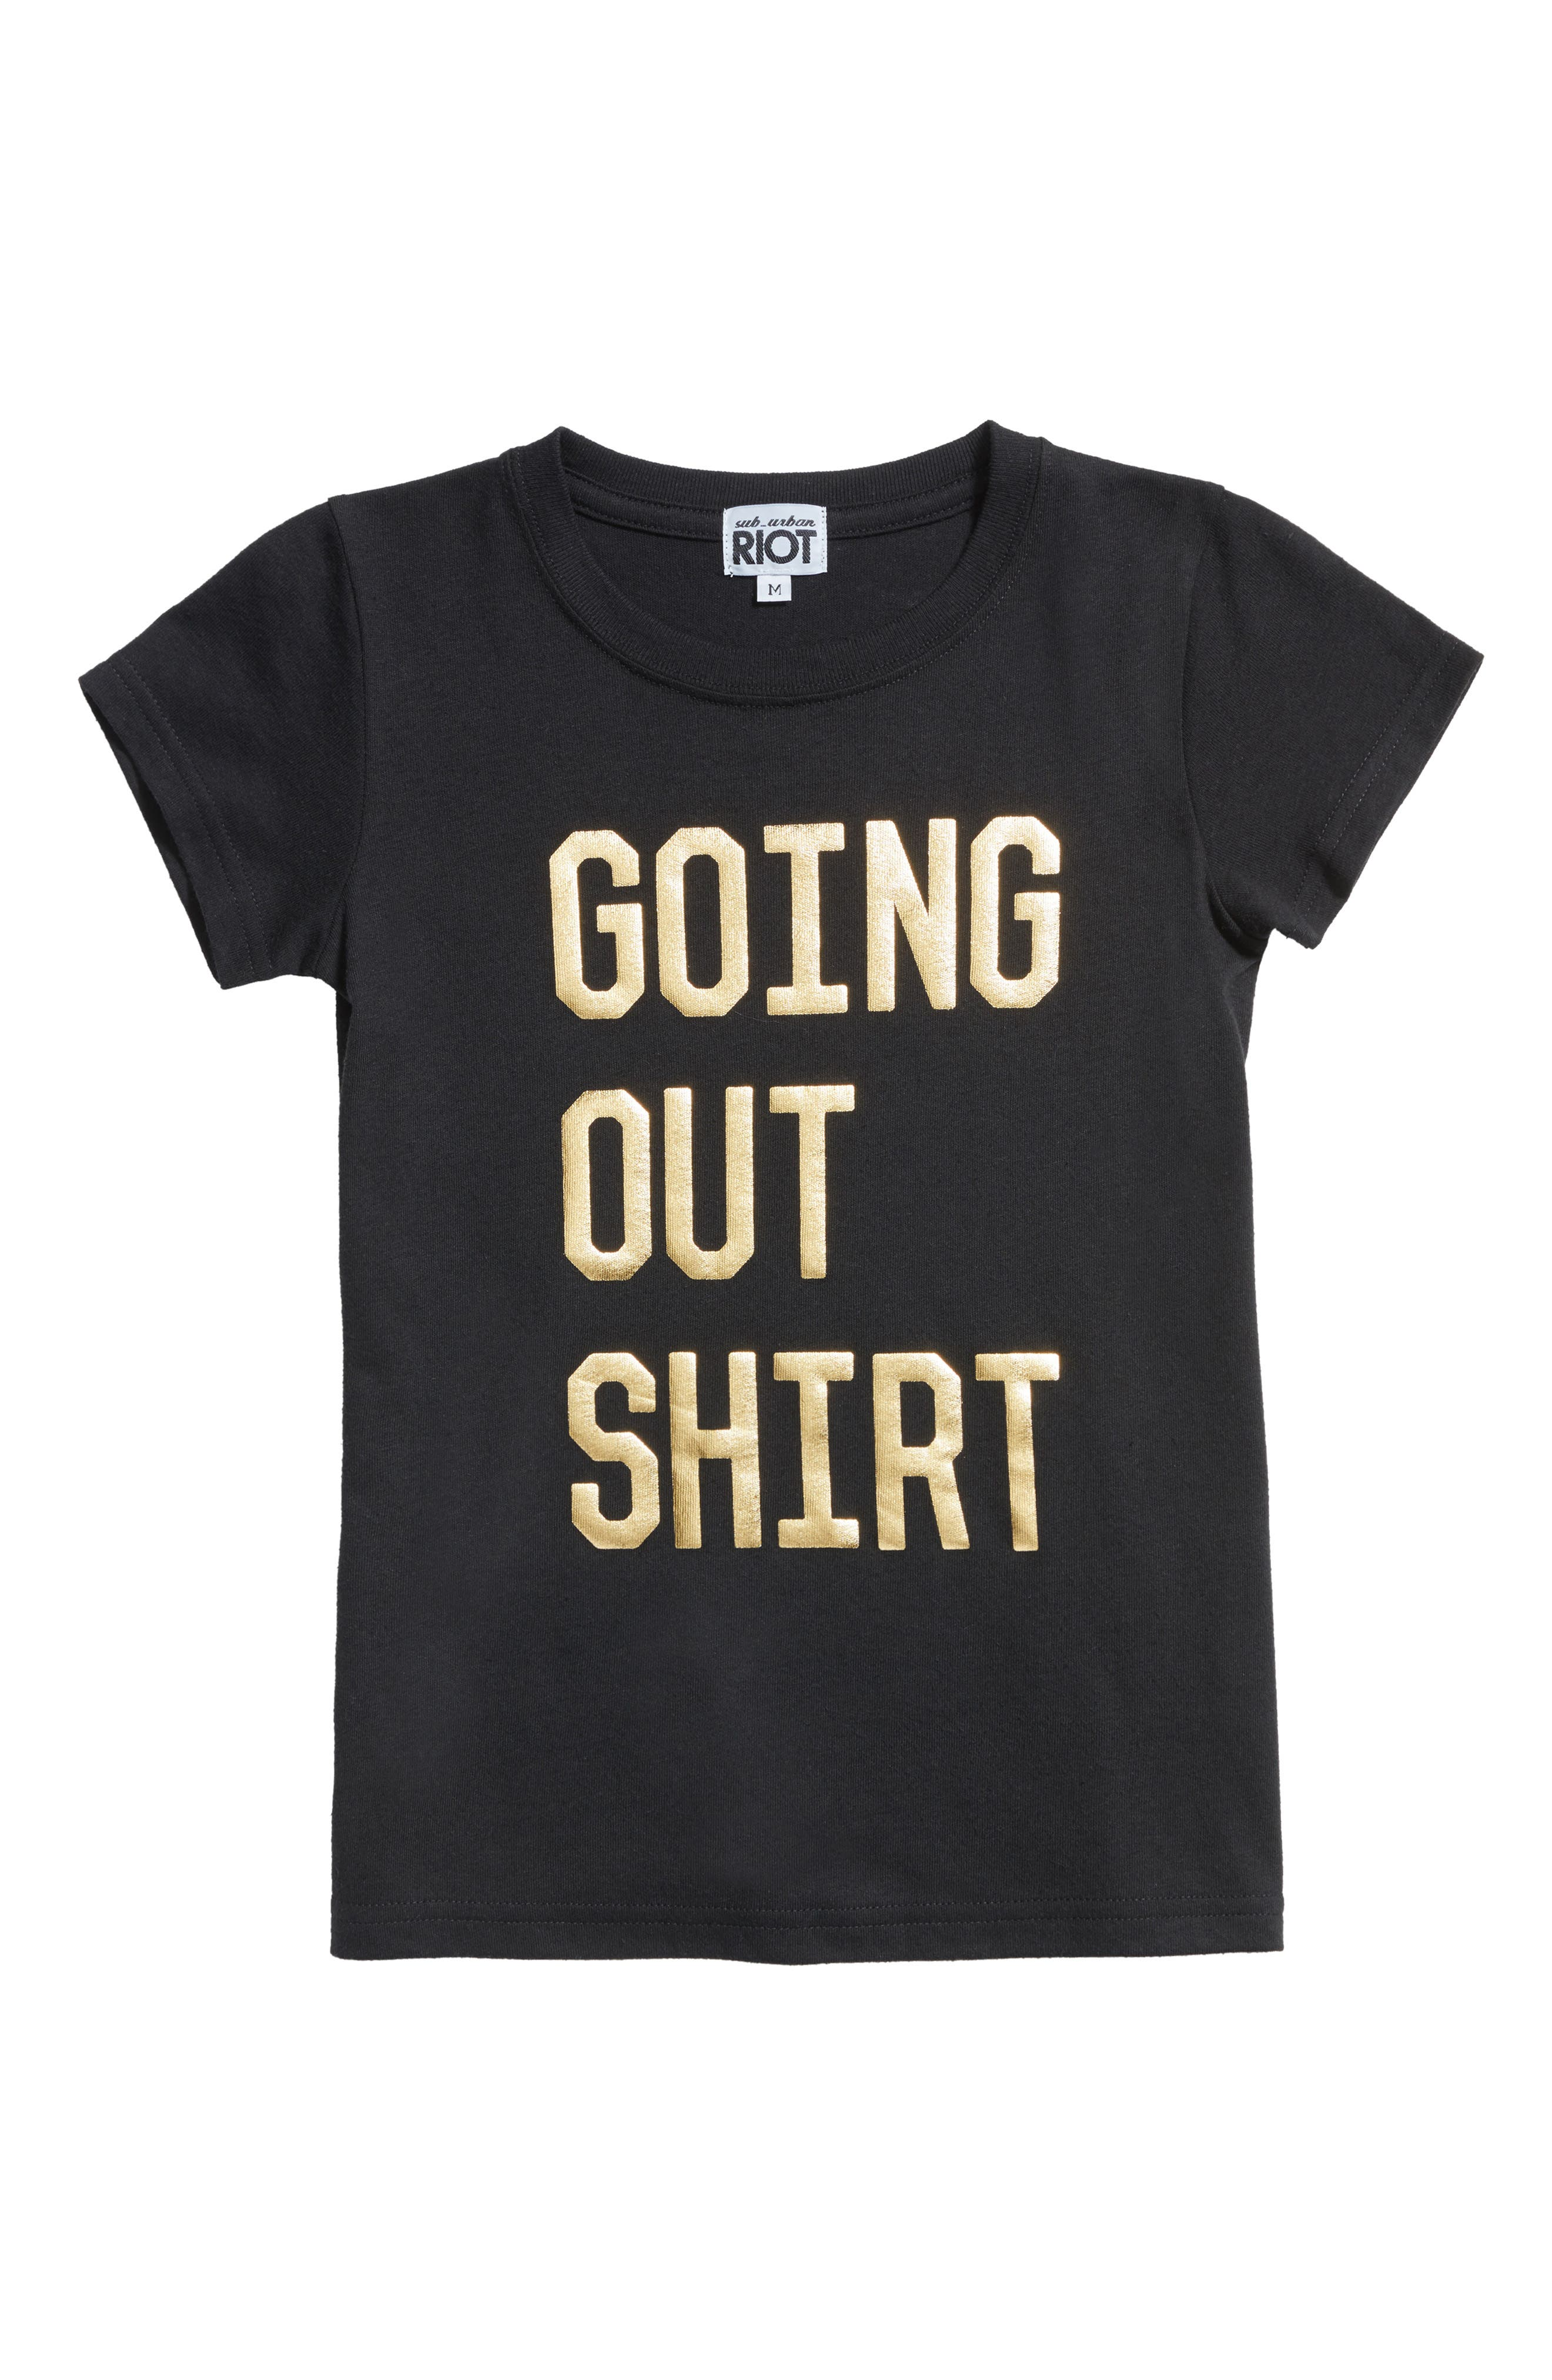 Sub_Urban Riot Going Out Shirt Tee (Big Girls)